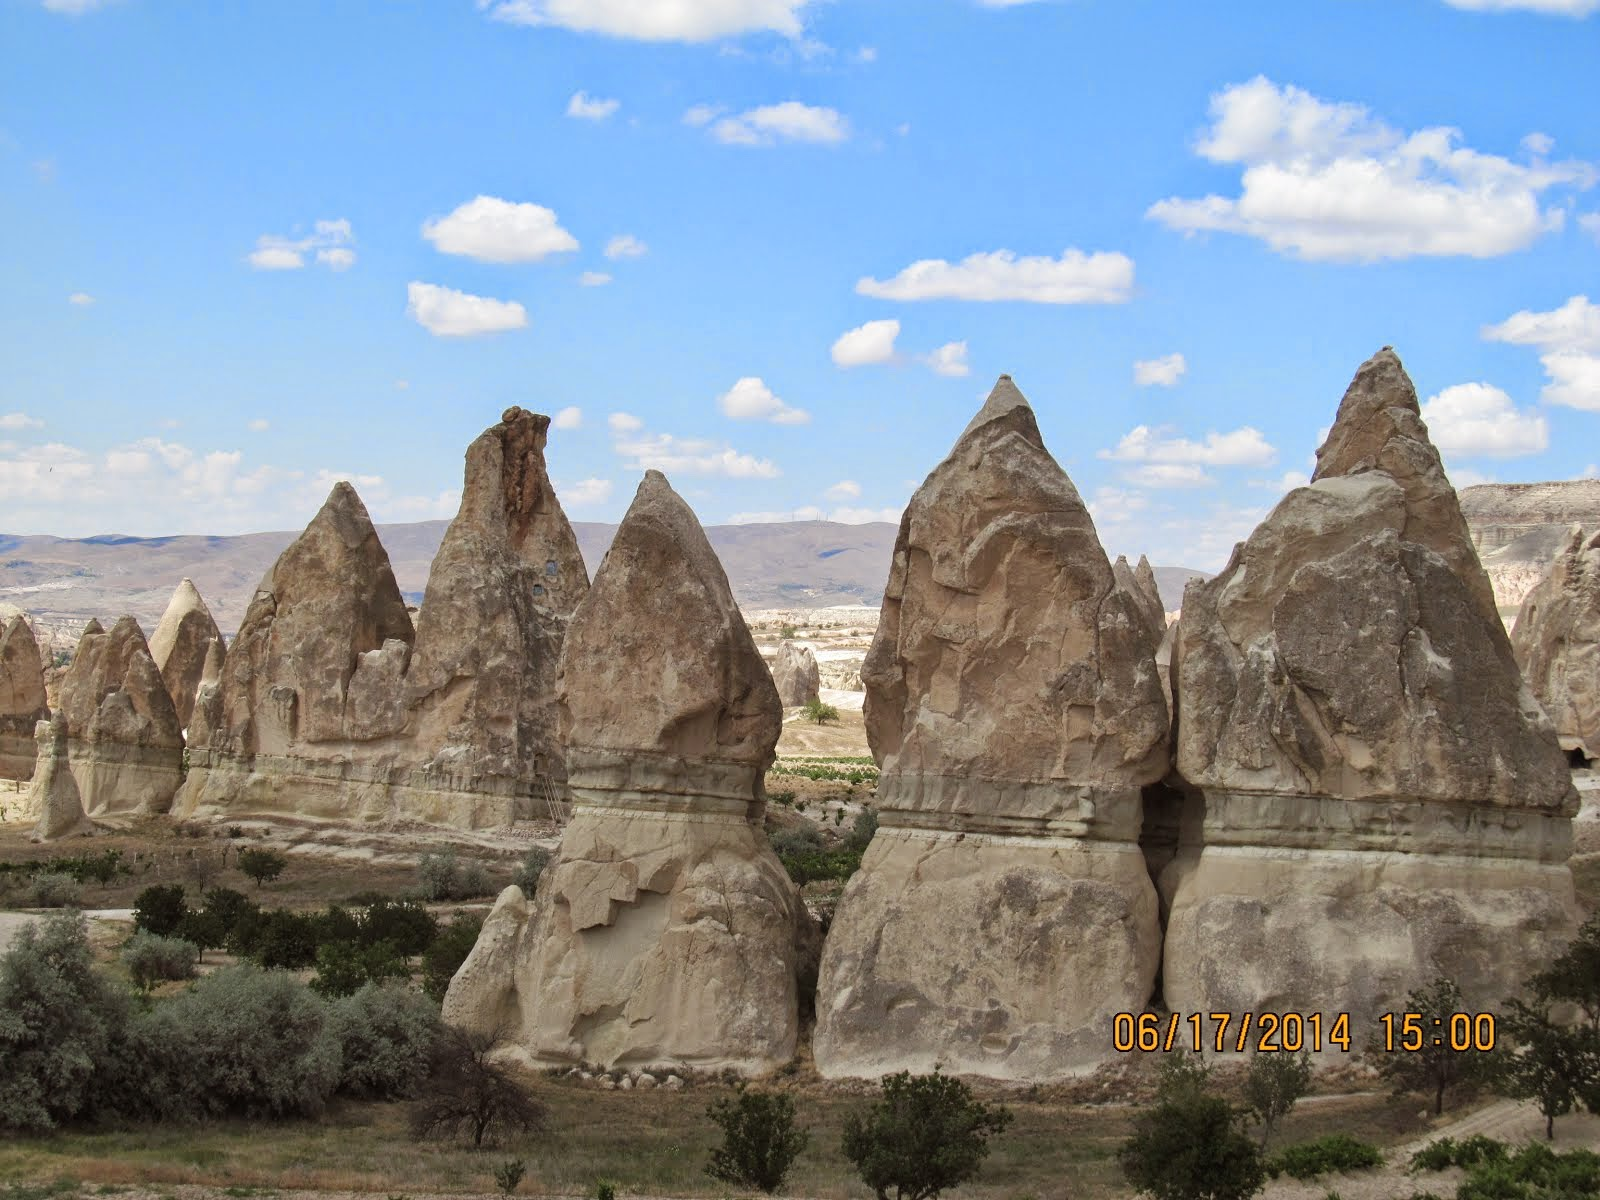 Dunce Cap Pinnacles, Rose Valley, Goreme, Cappadocia (Turkey)